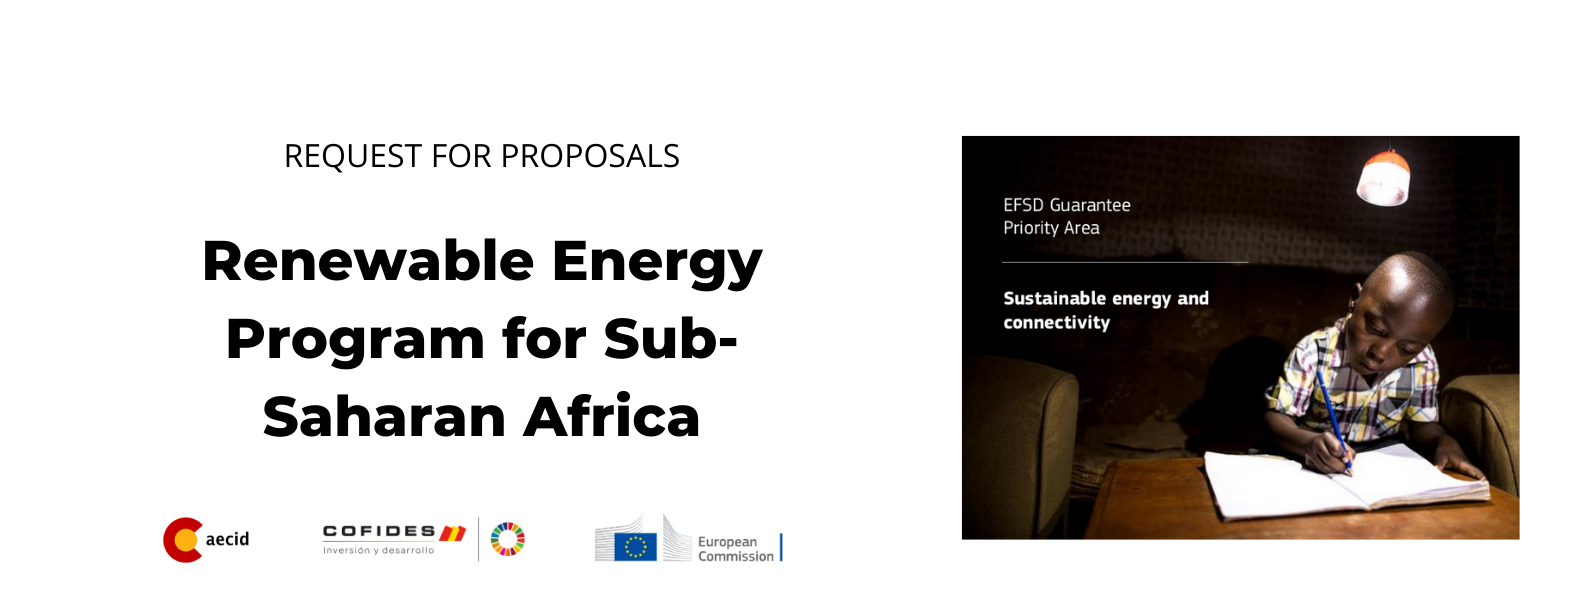 Imagen de la RFP - Renewable Energy Program for Sub-Saharan Africa